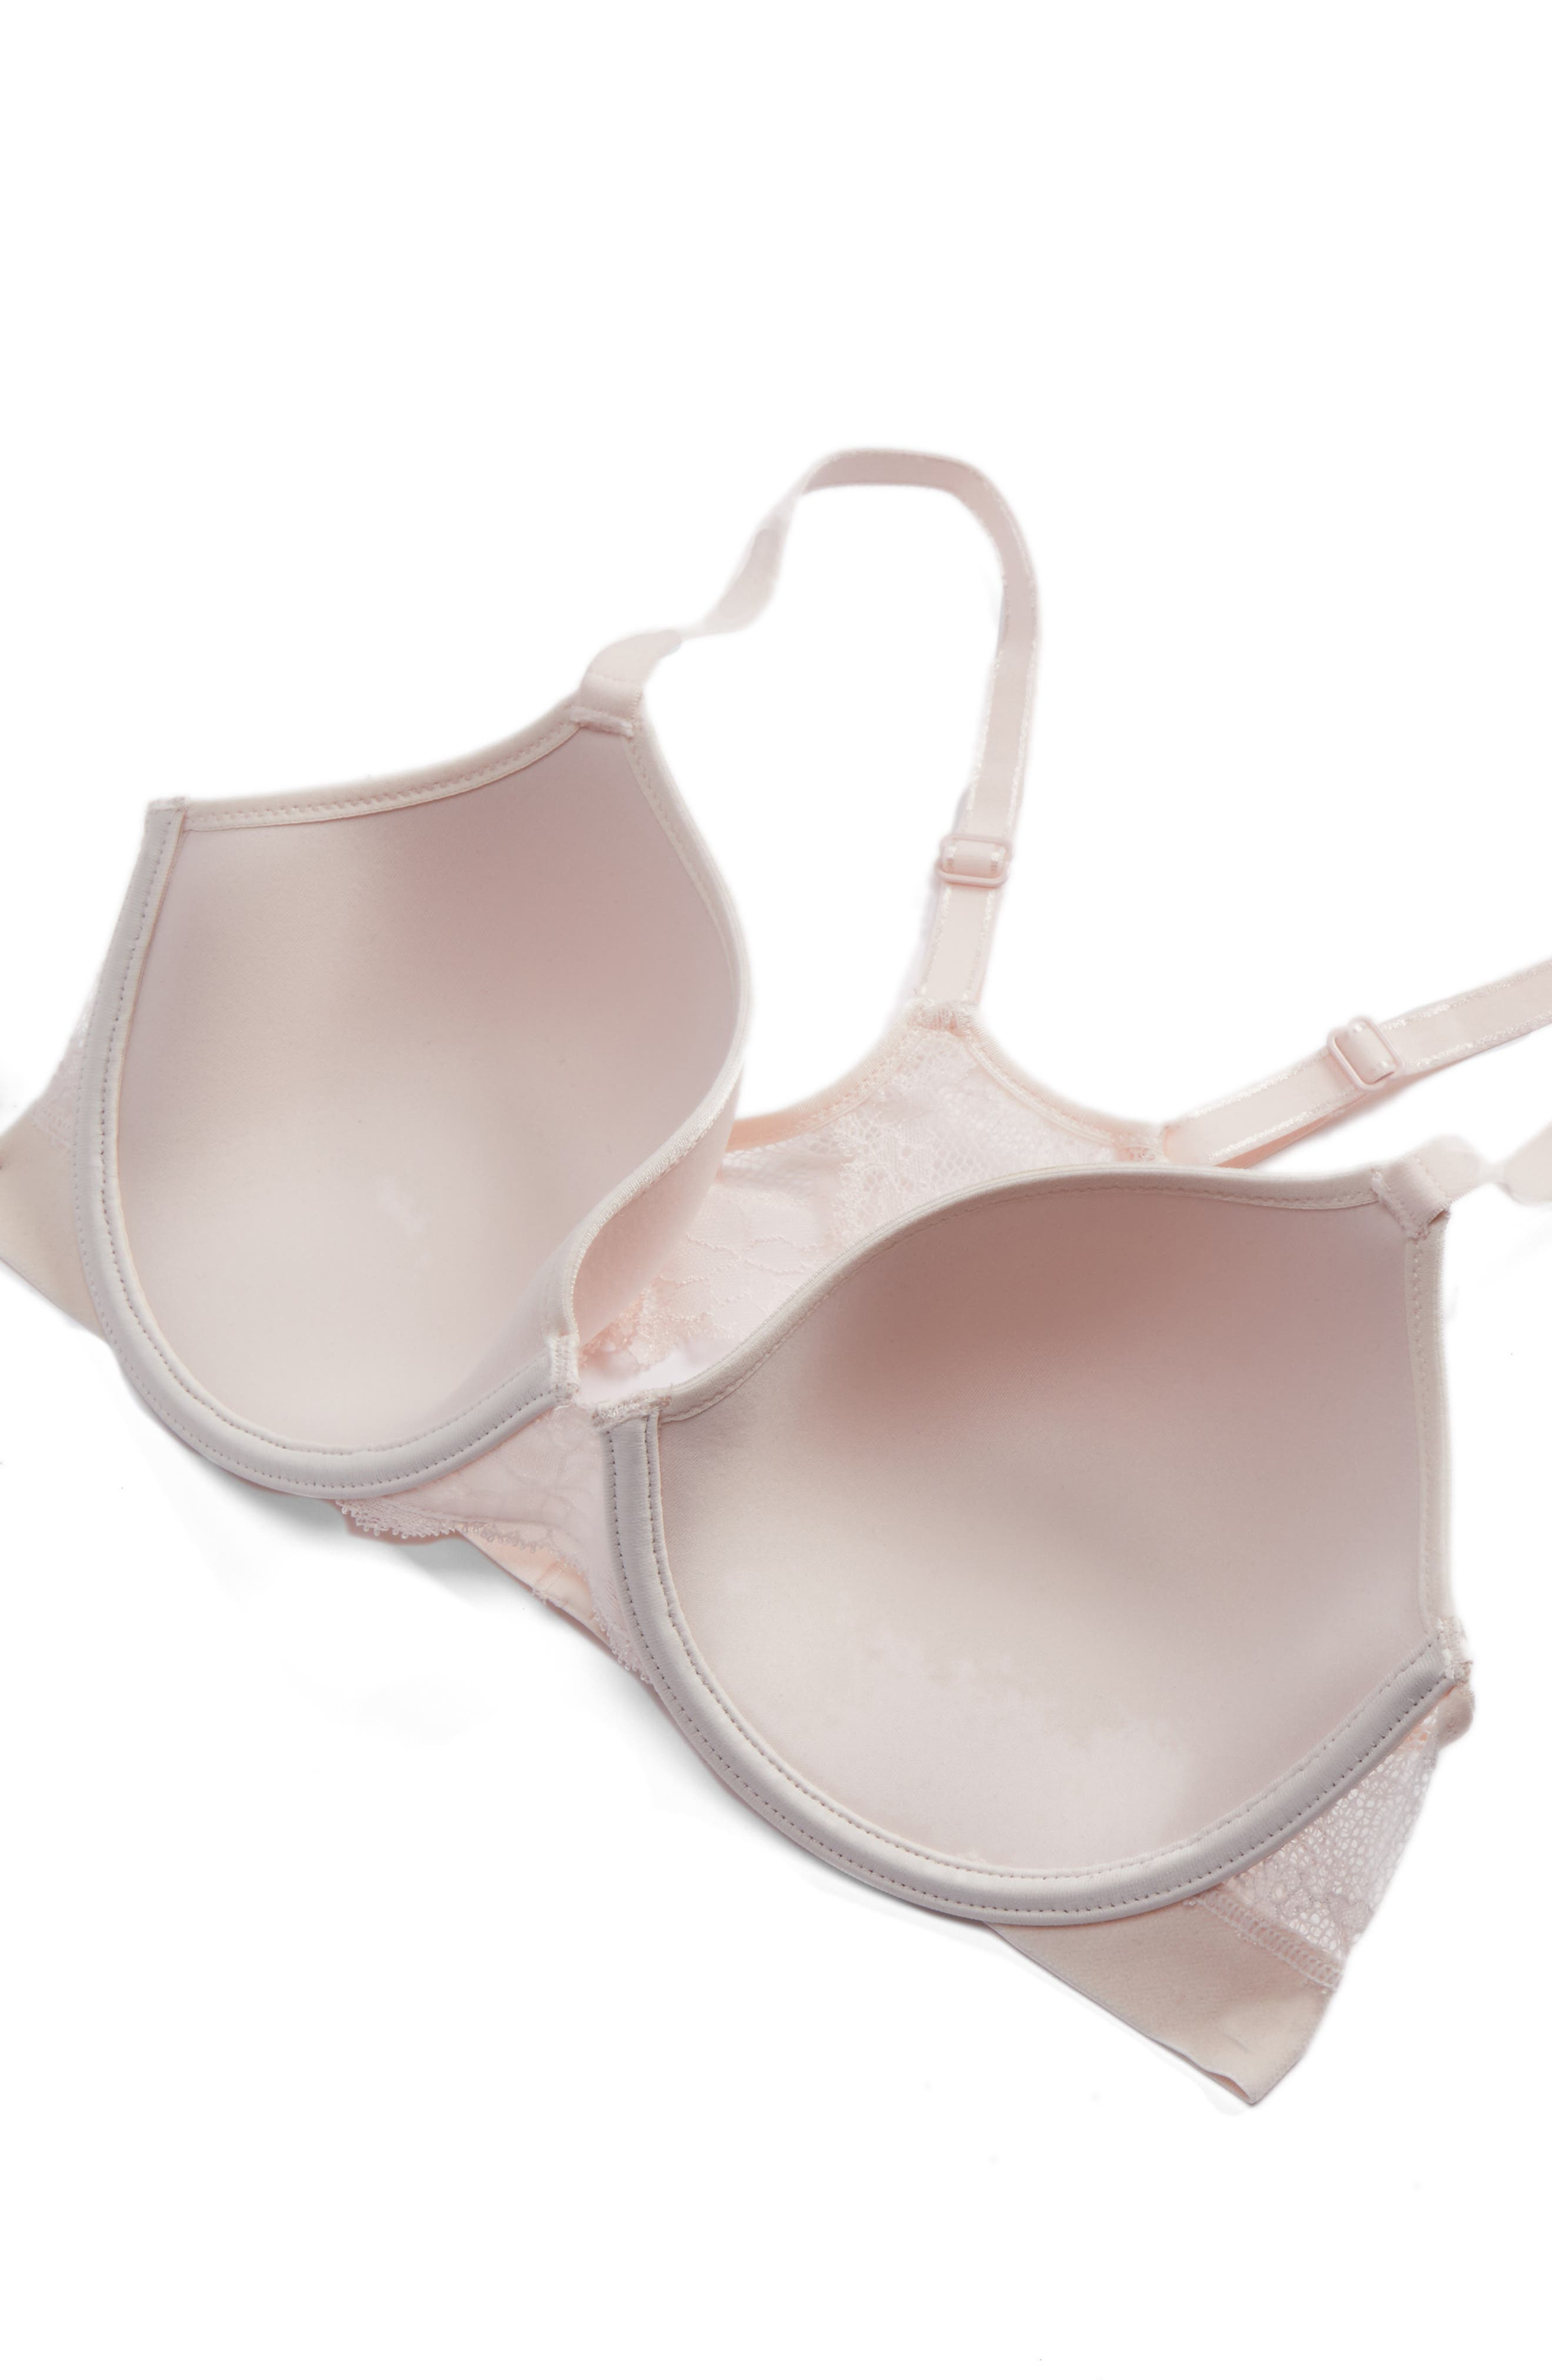 Everyday Lace Underwire Bra,                             Alternate thumbnail 4, color,                             650